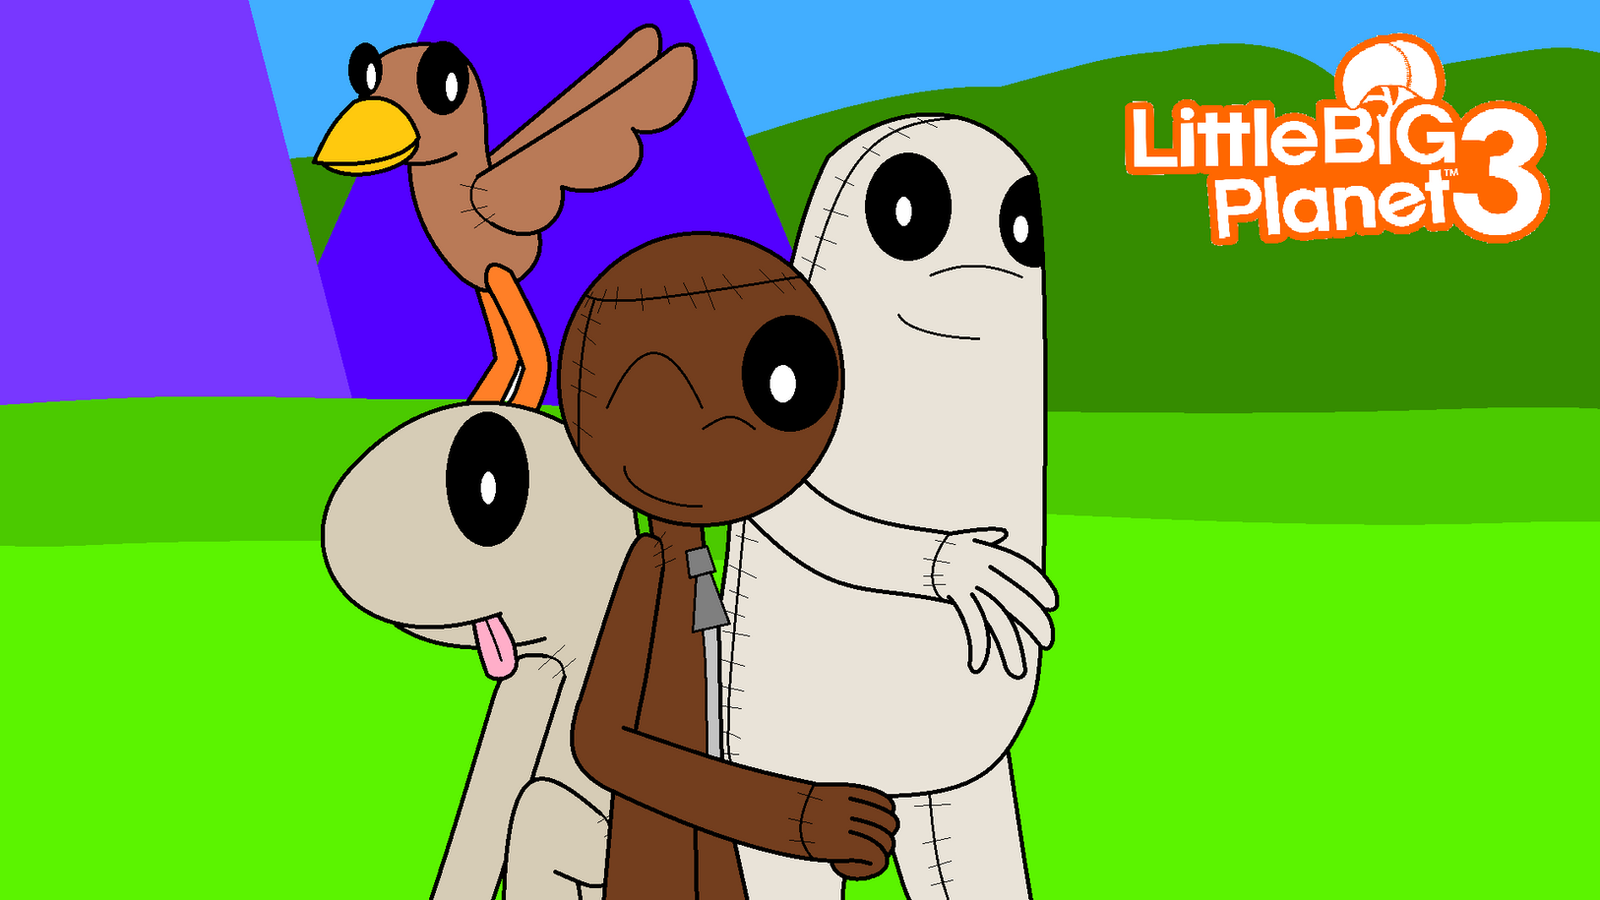 LittleBigPlanet: Fun and Such by eviltofu1234 on DeviantArt